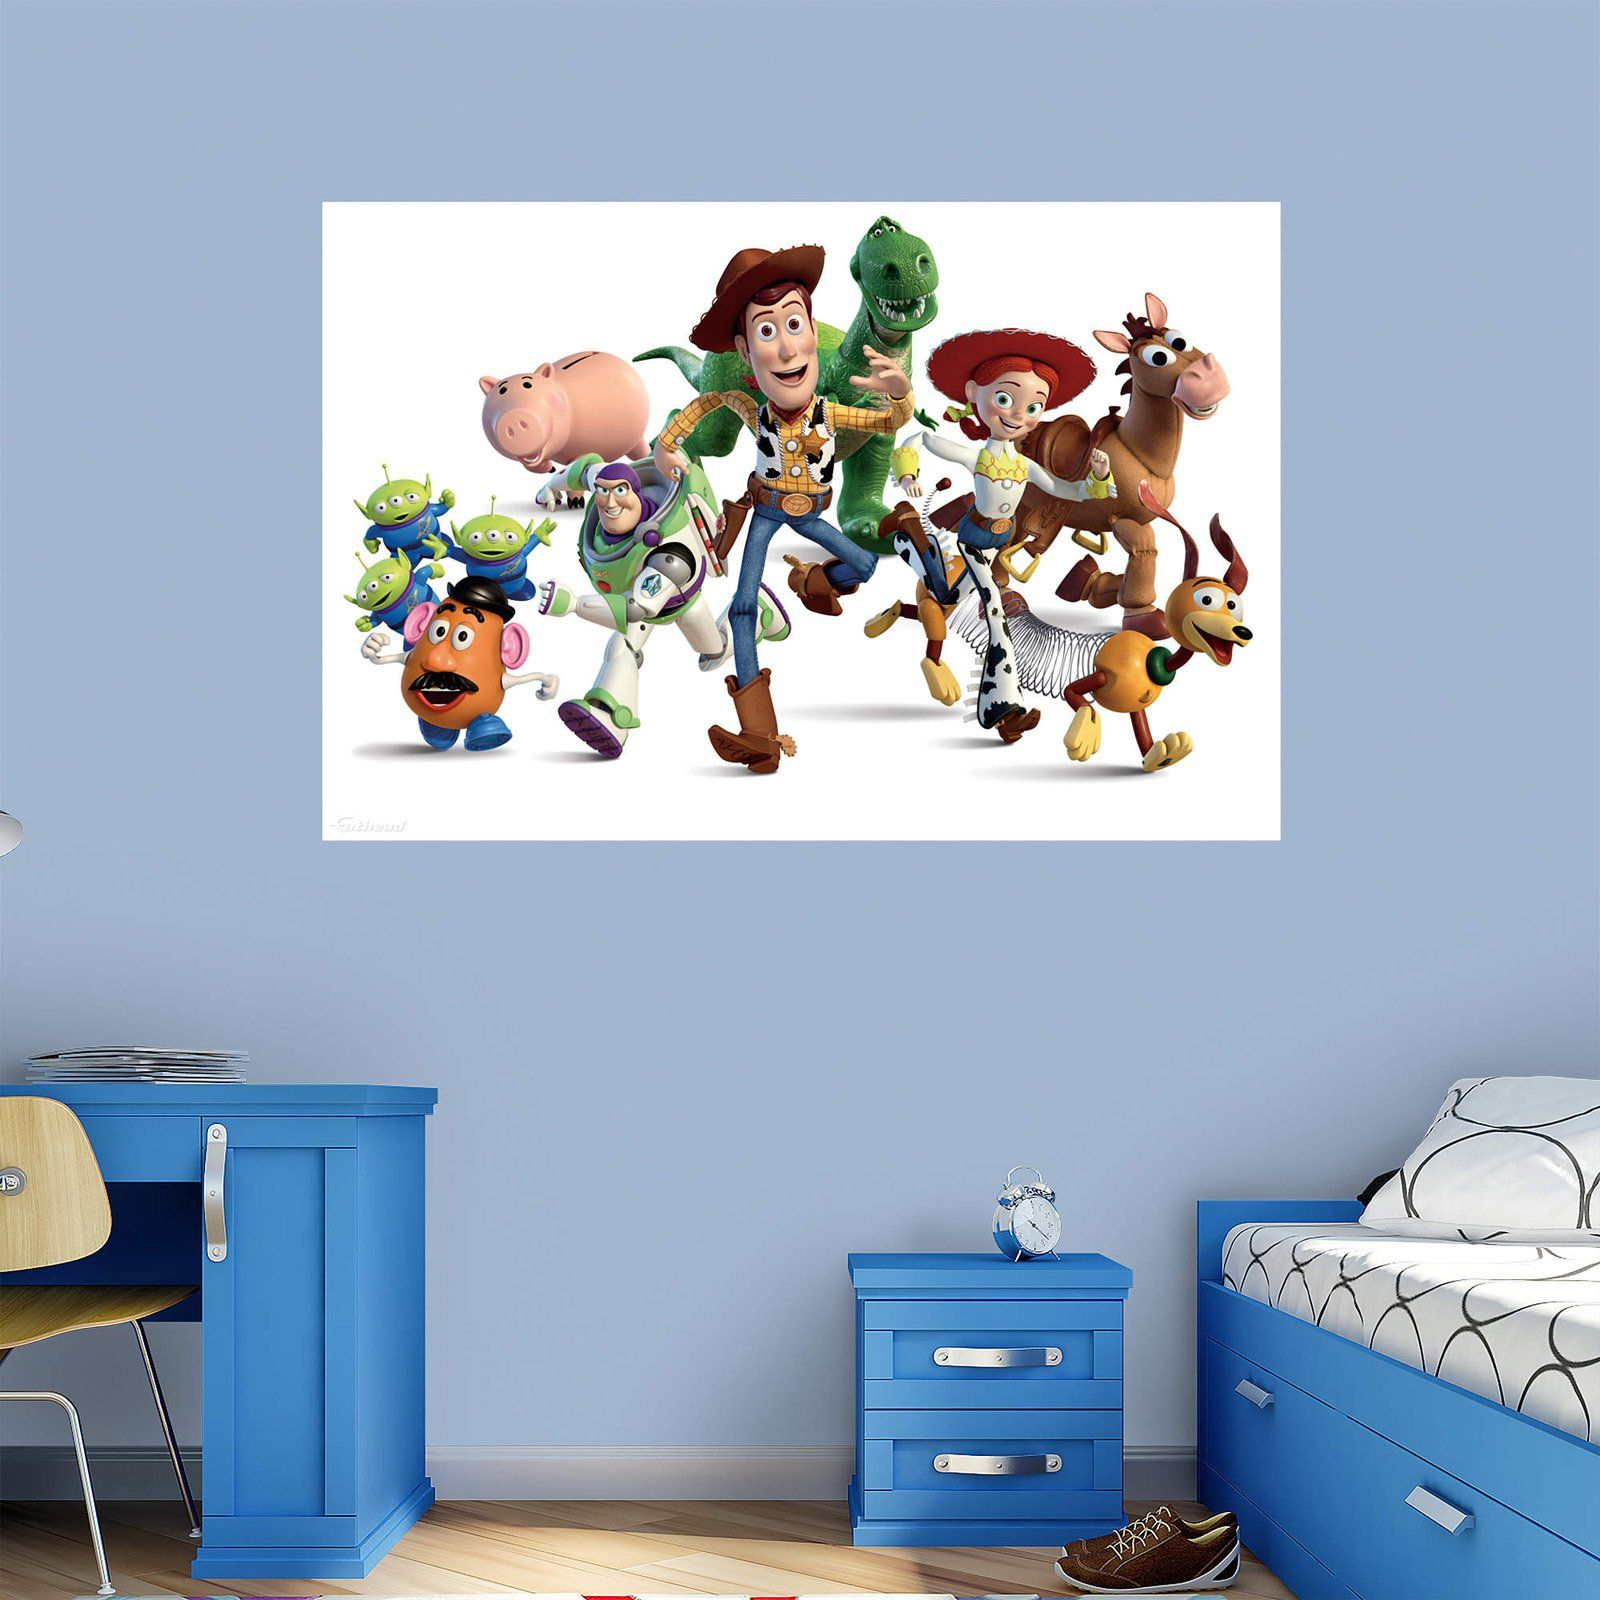 Fathead toy story cast wall mural 74 74544 products fathead toy story cast wall mural 74 74544 amipublicfo Image collections